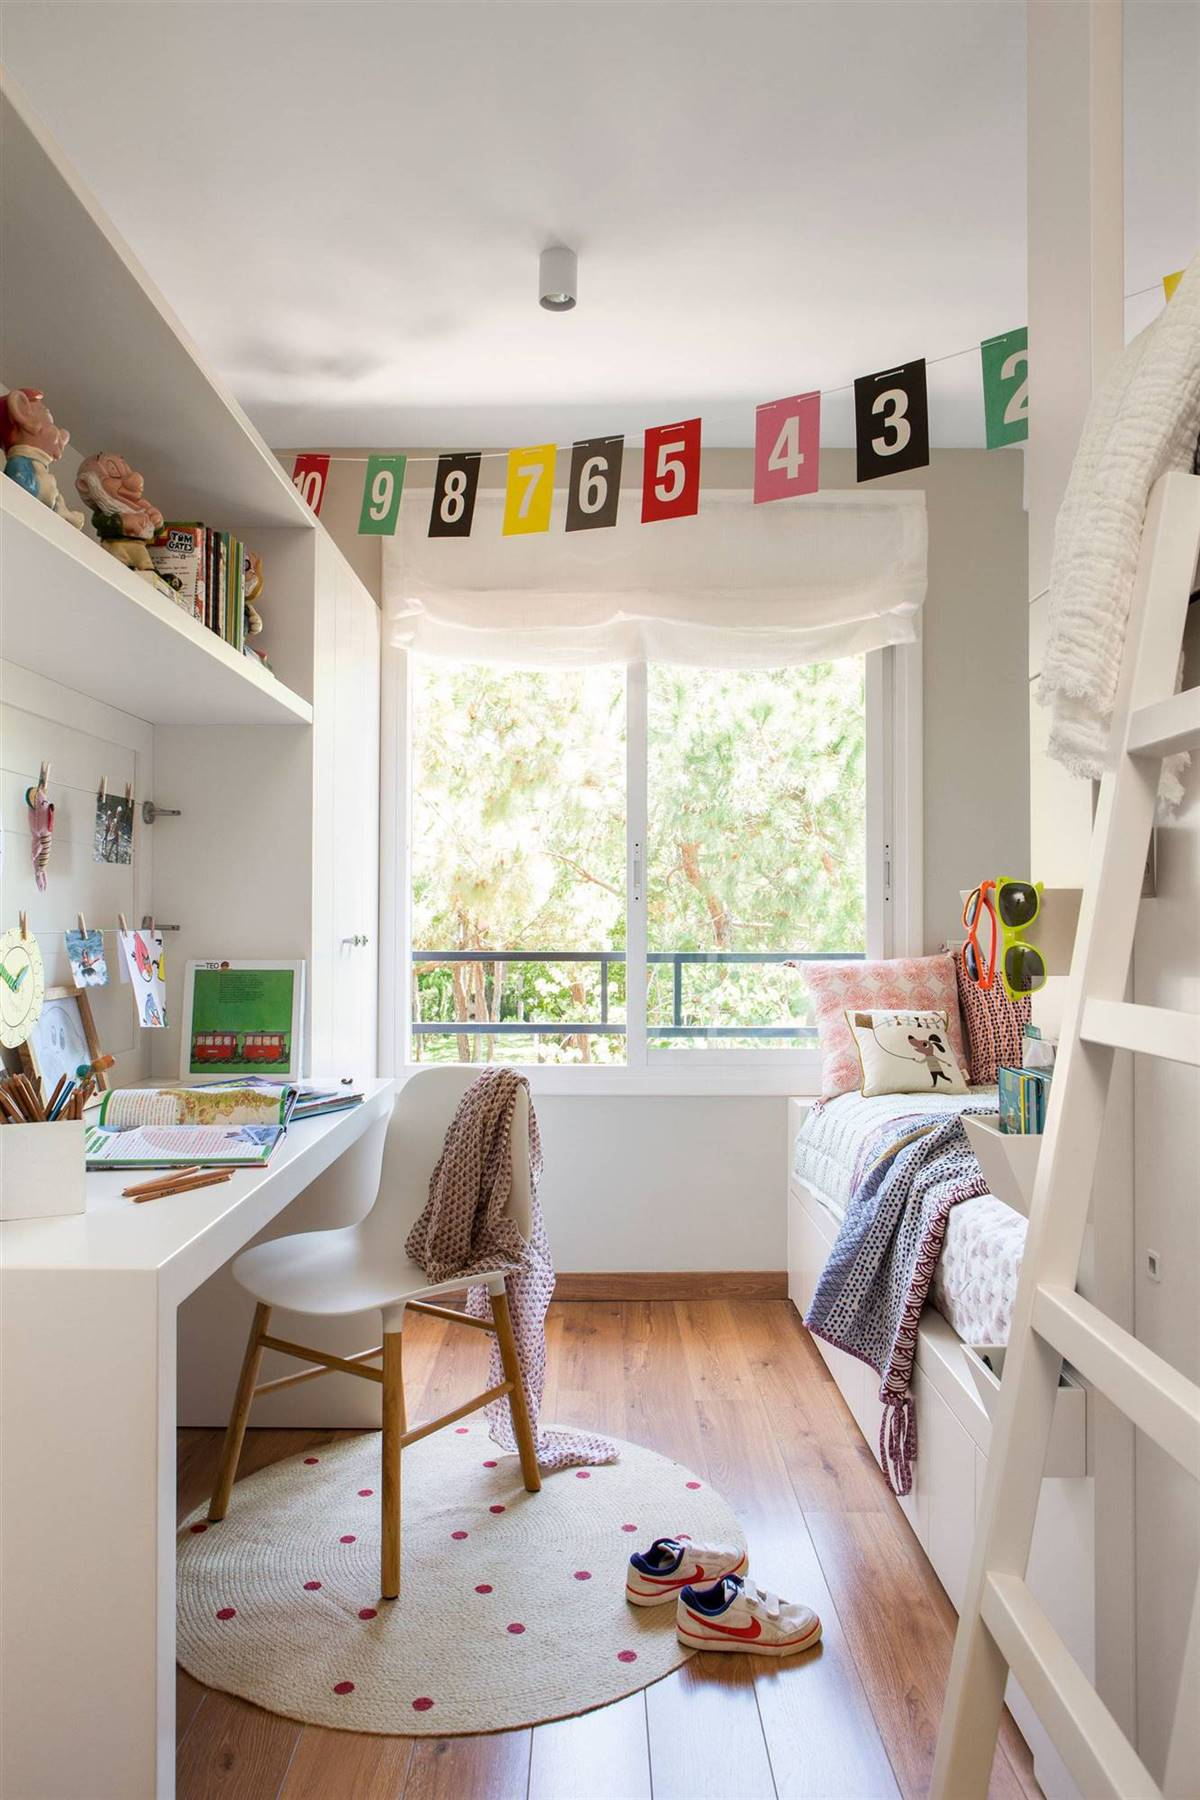 WITH A COMPLETE STUDY AREA AND A VERY CAPABLE CLOSET